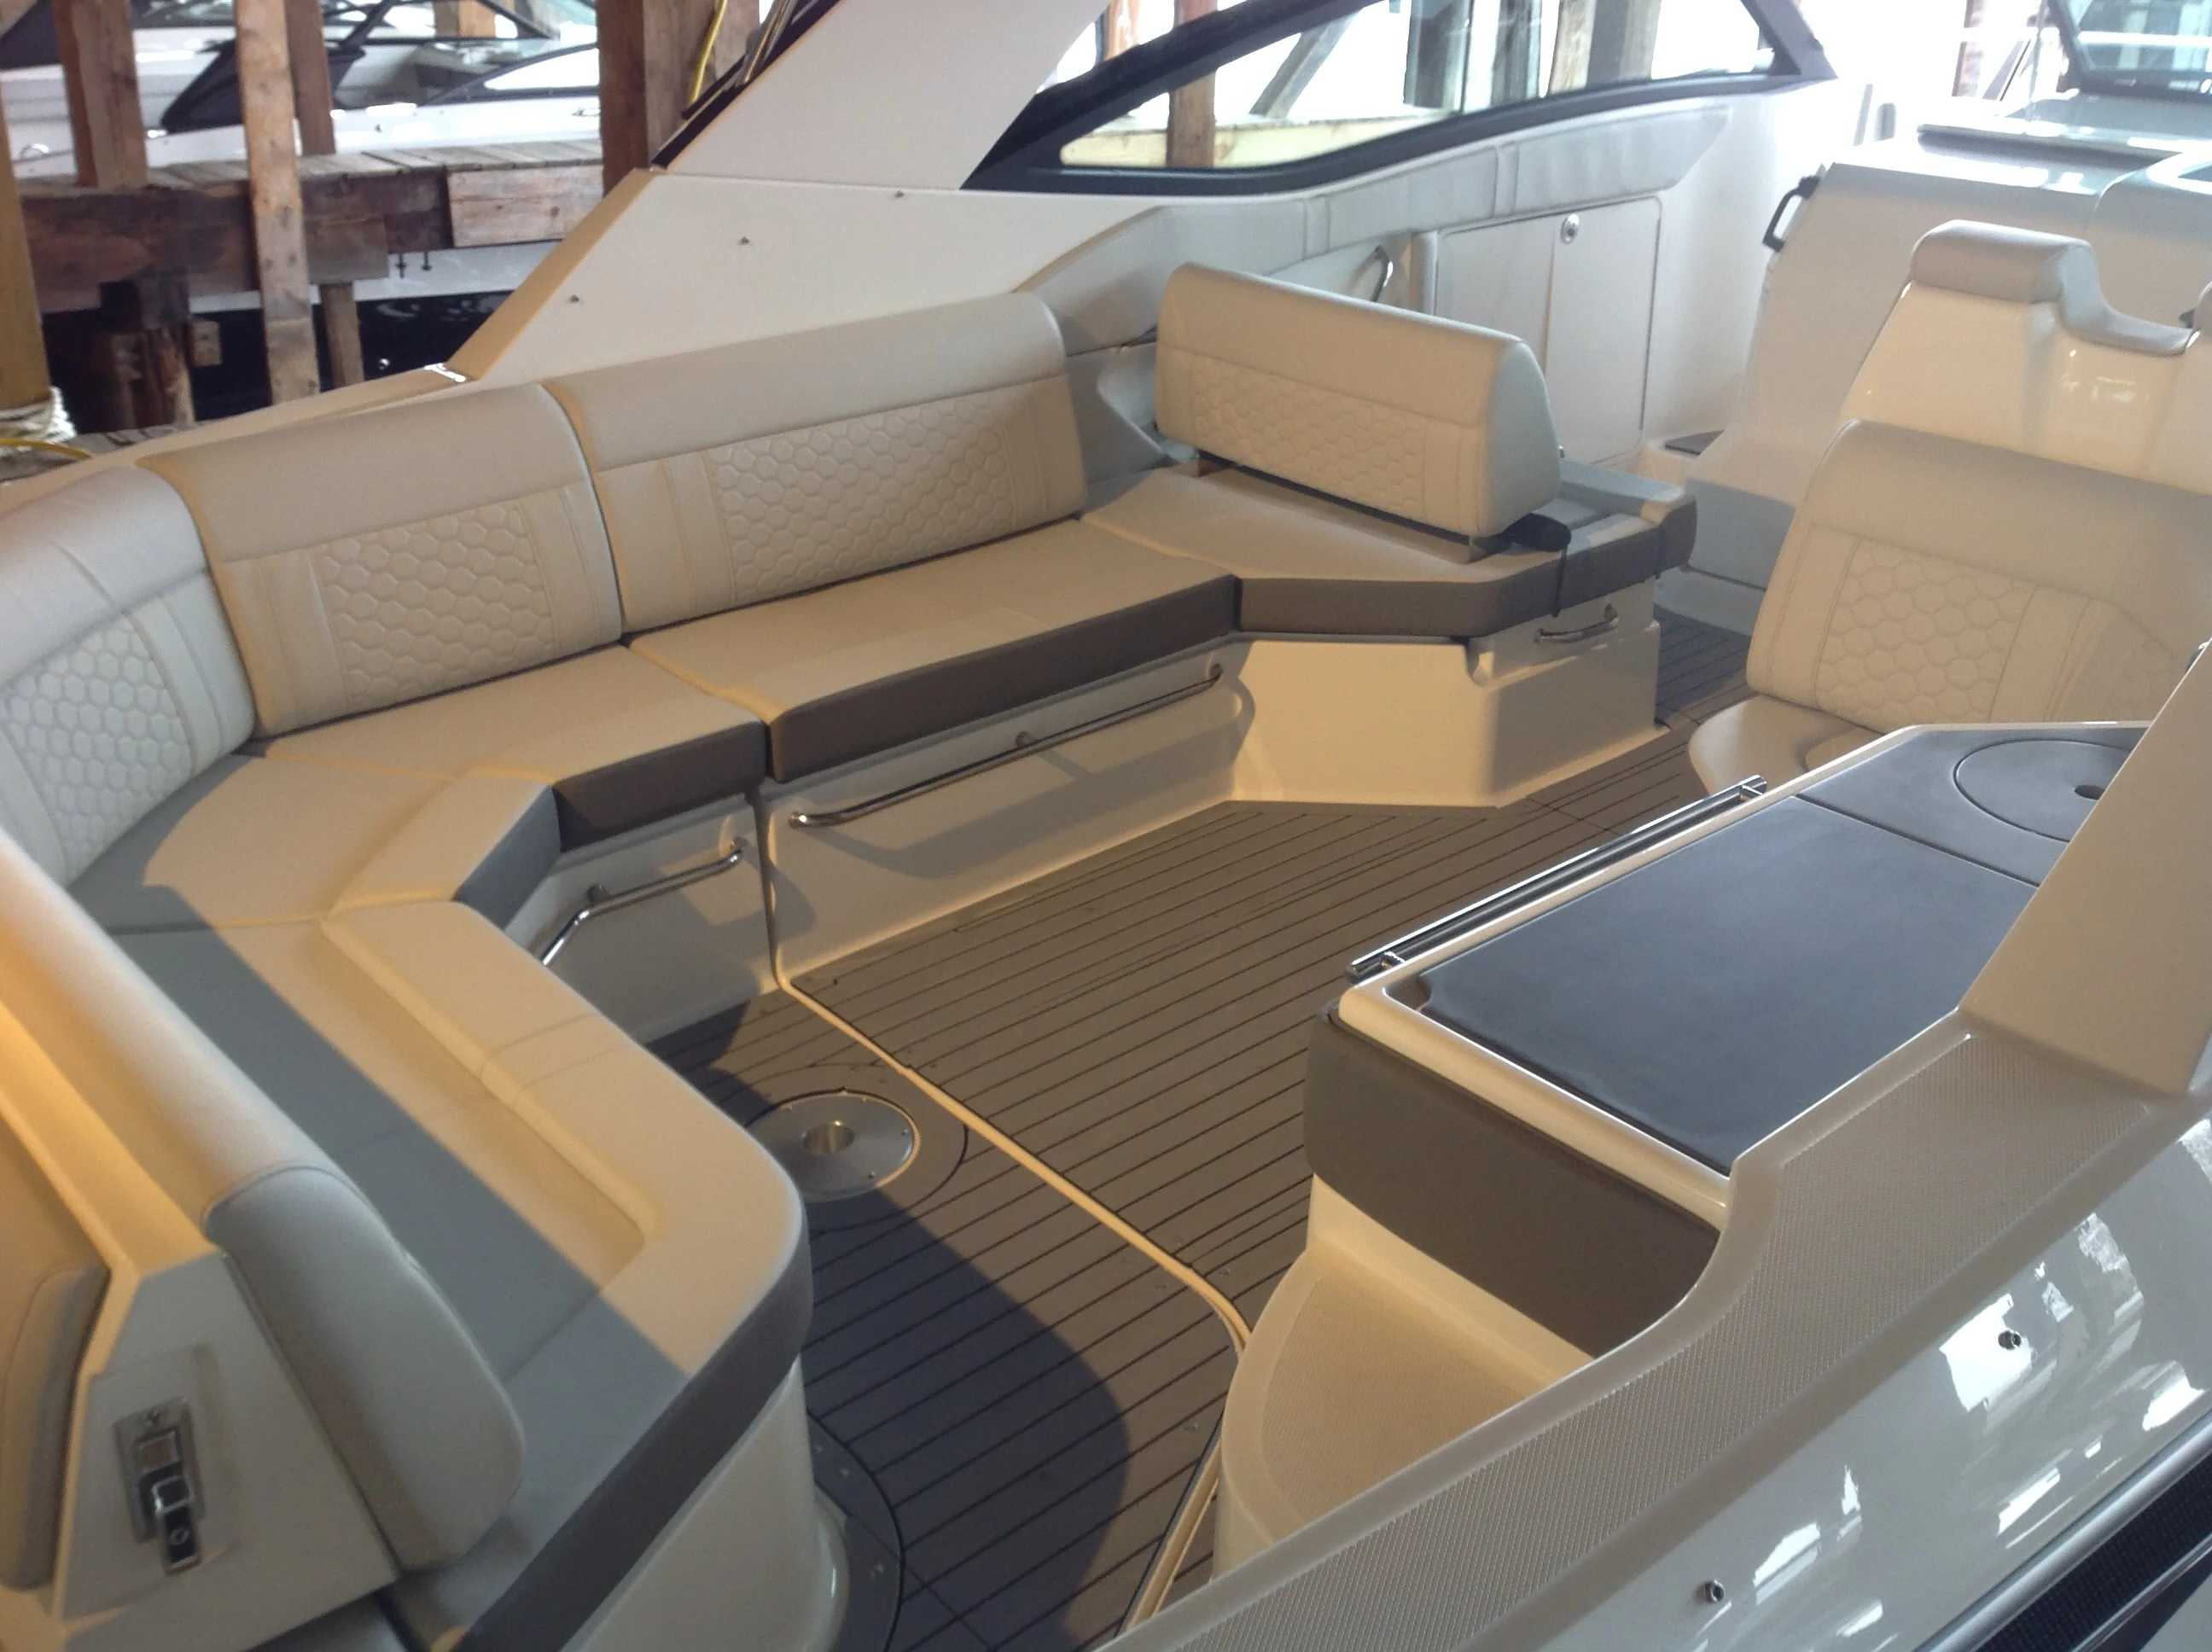 2021 Sea Ray boat for sale, model of the boat is 320 Sundancer & Image # 21 of 31